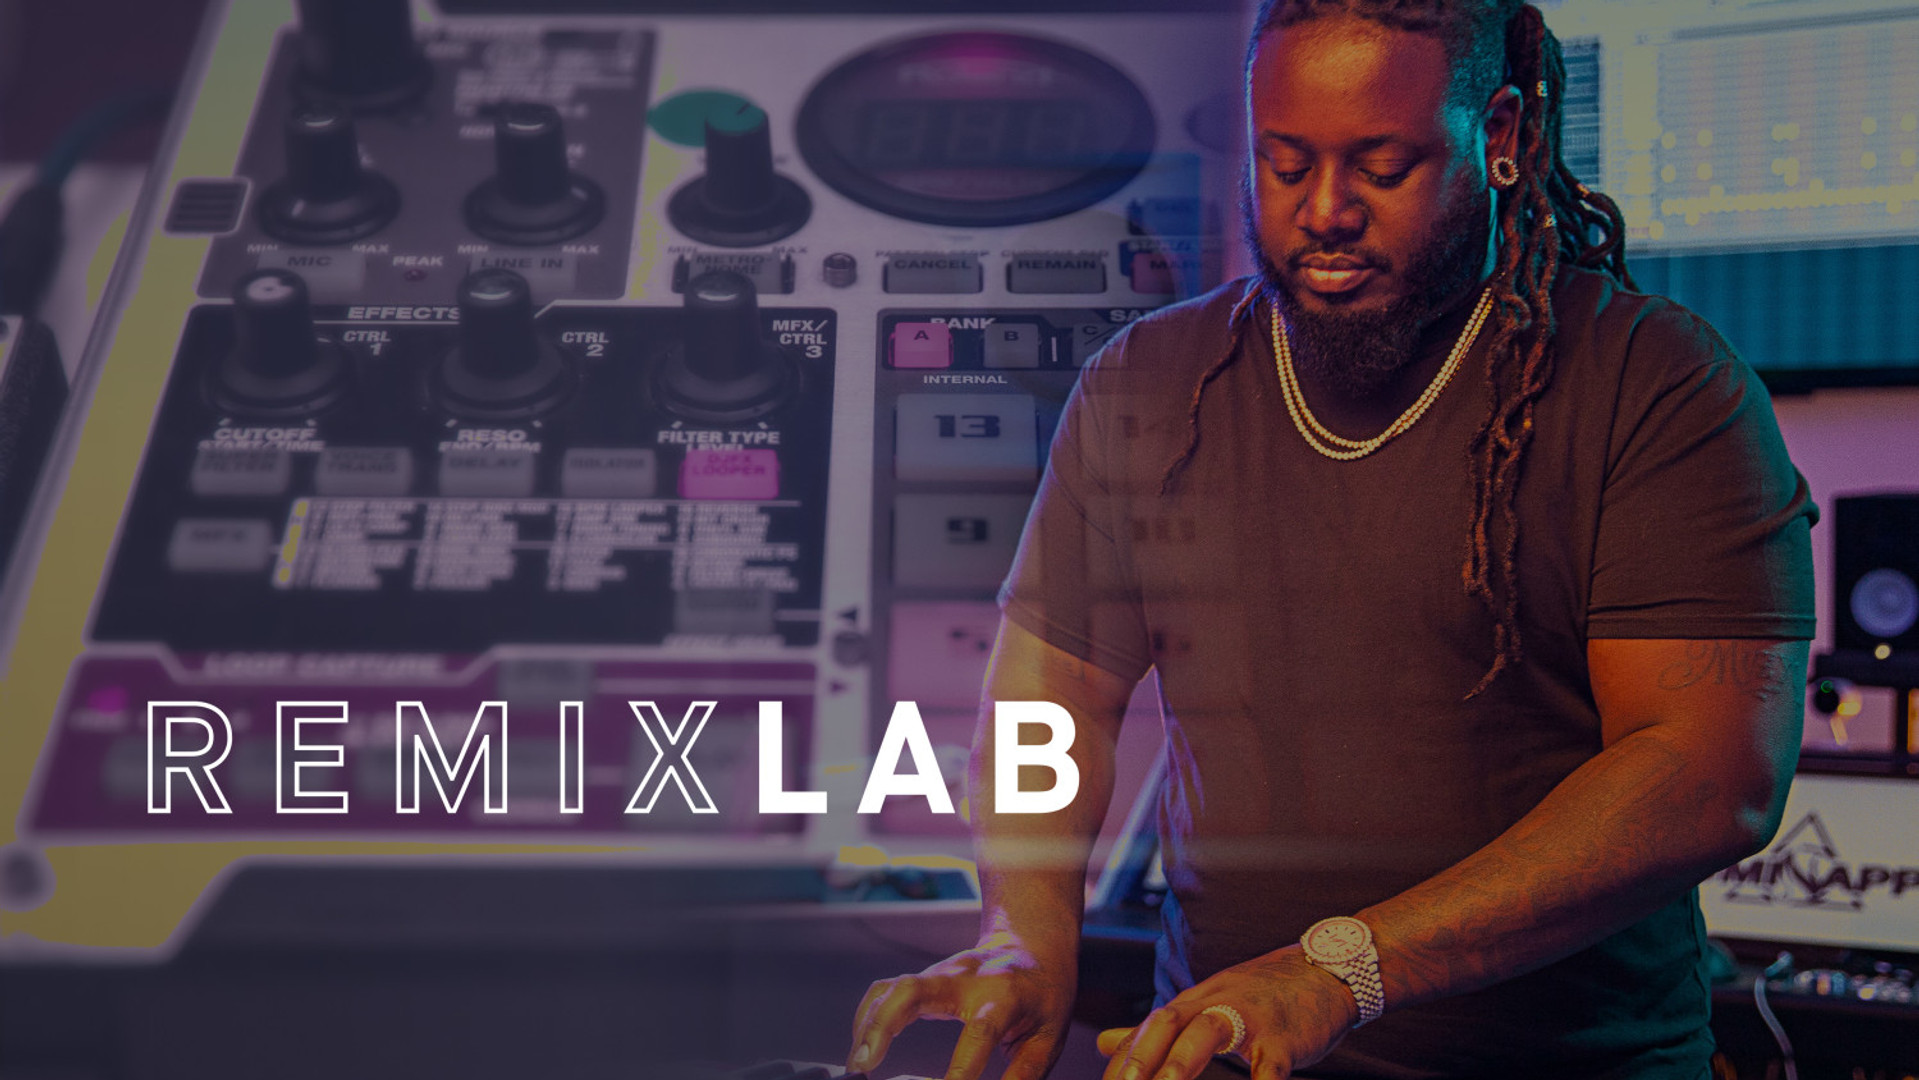 Remix Lab